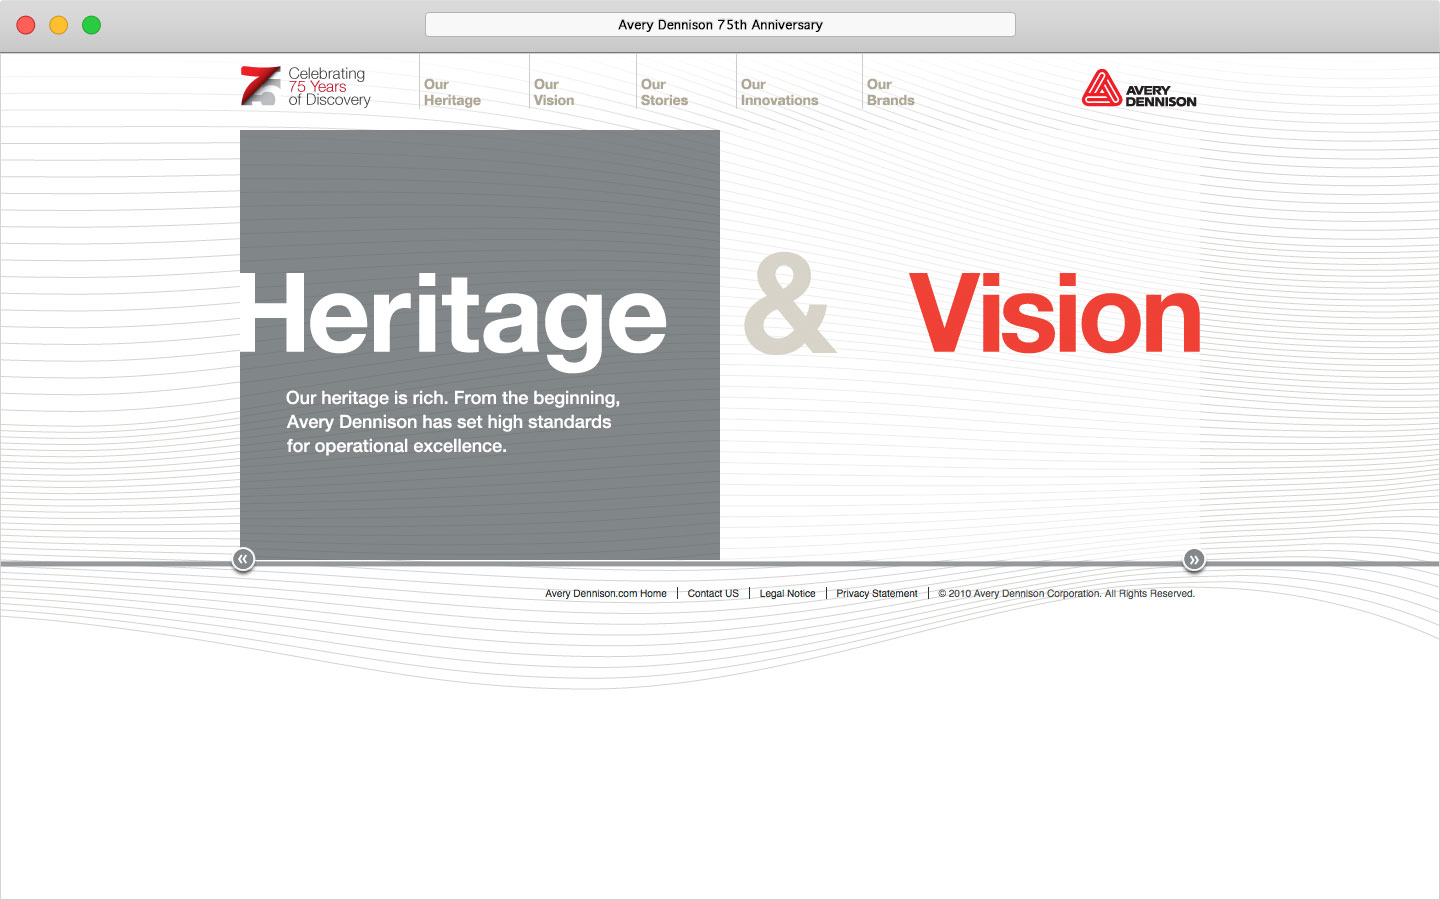 Avery Dennison 75th anniversary microsite homepage interaction